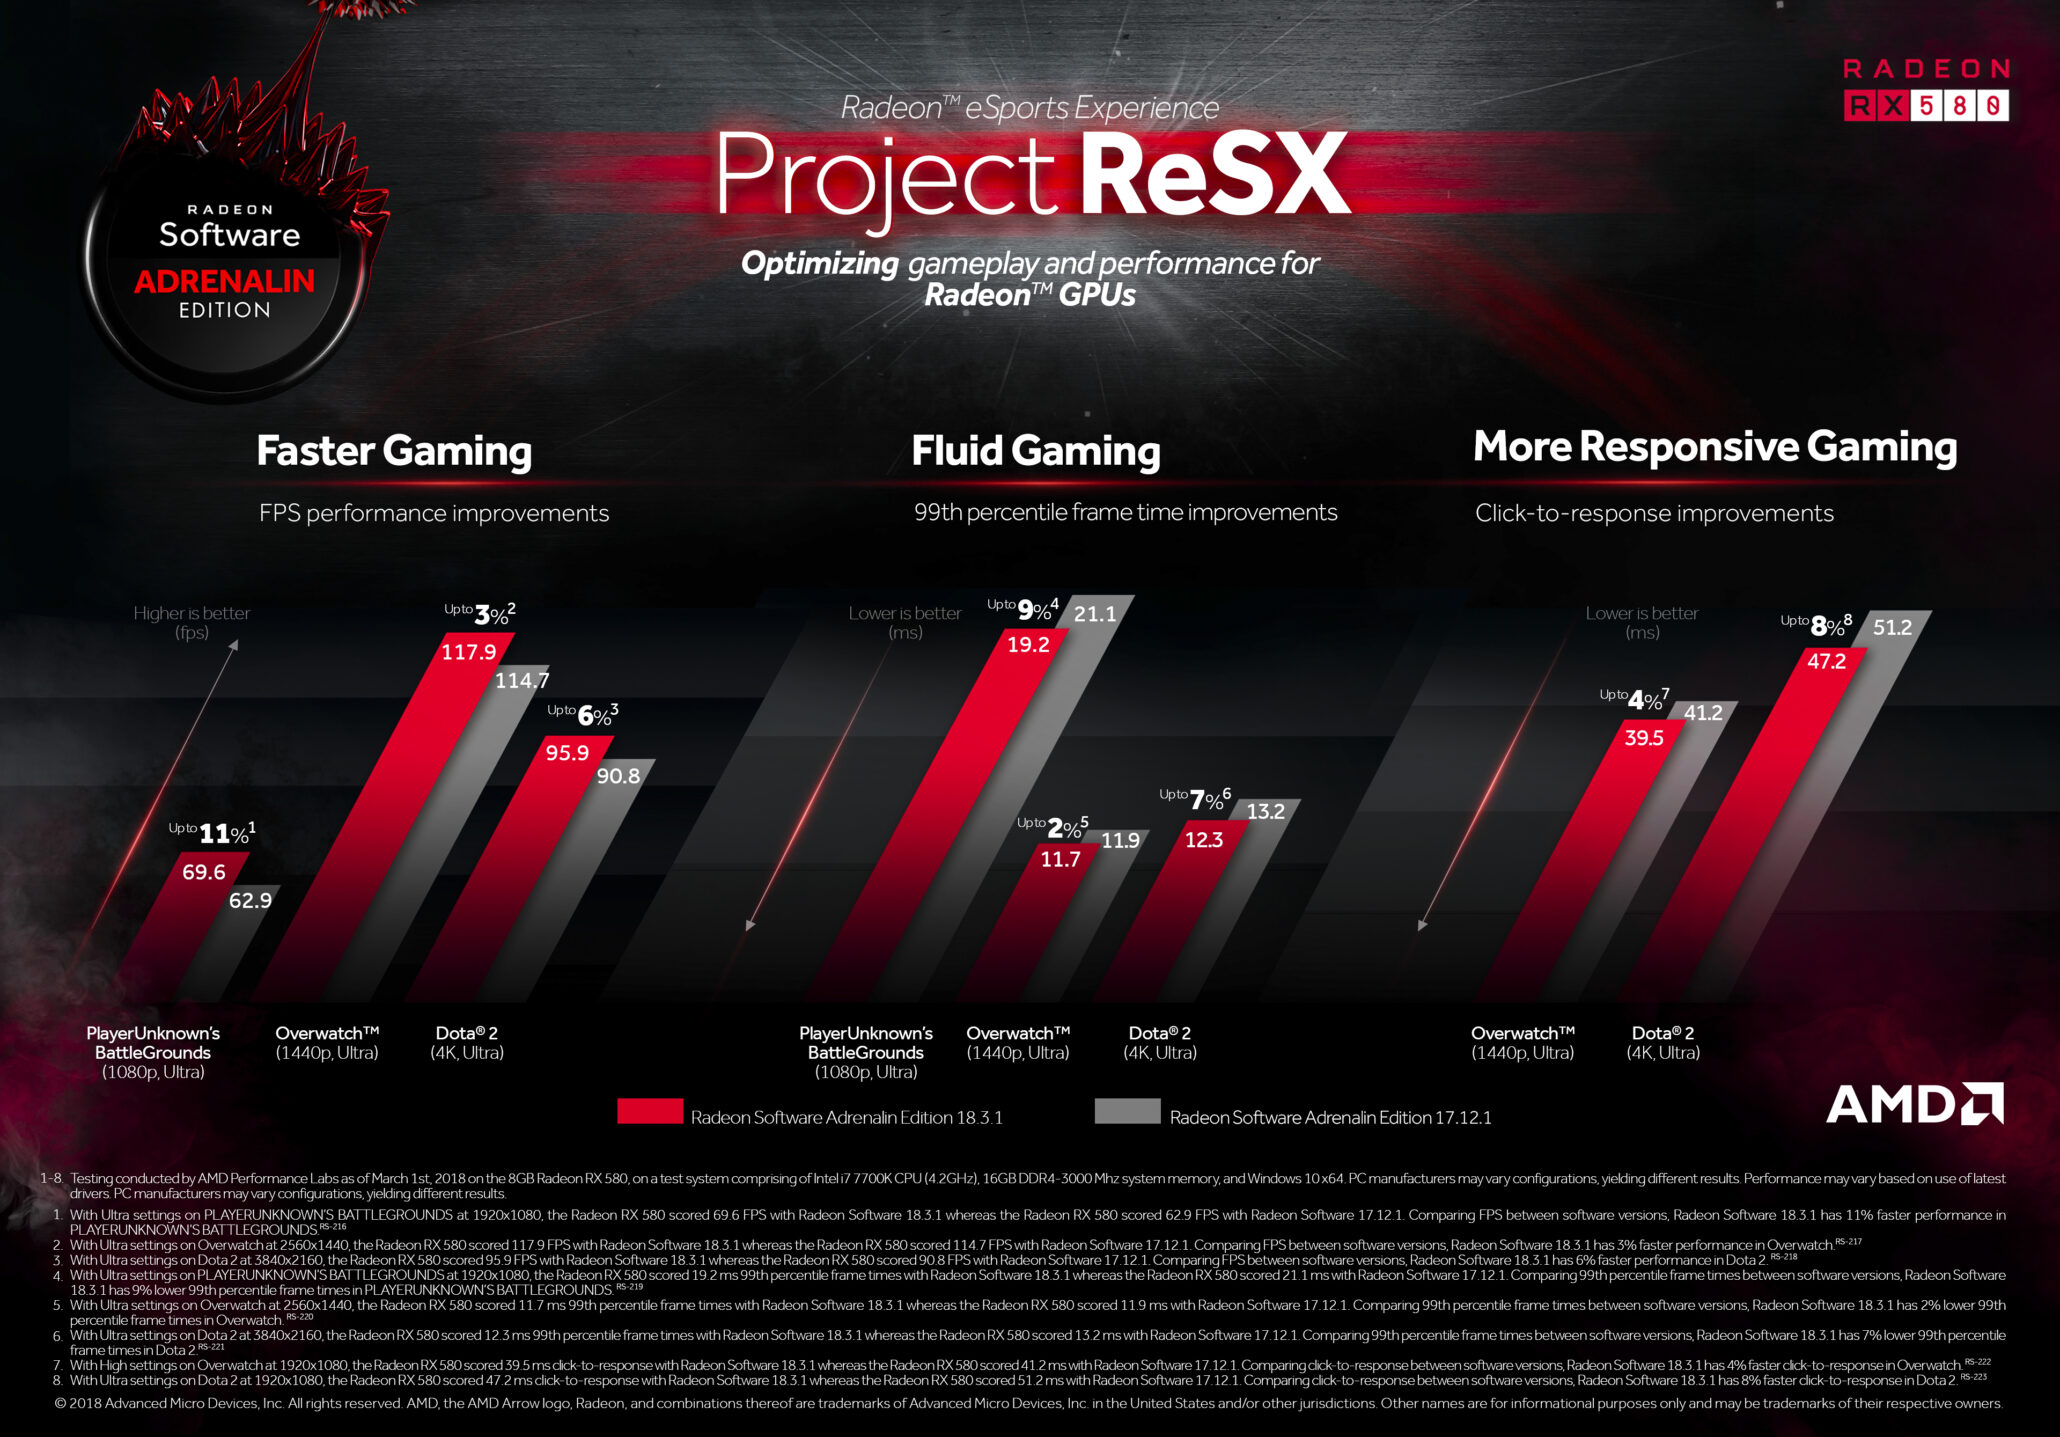 New Radeon Drivers Optimize Latest Releases and Provide More